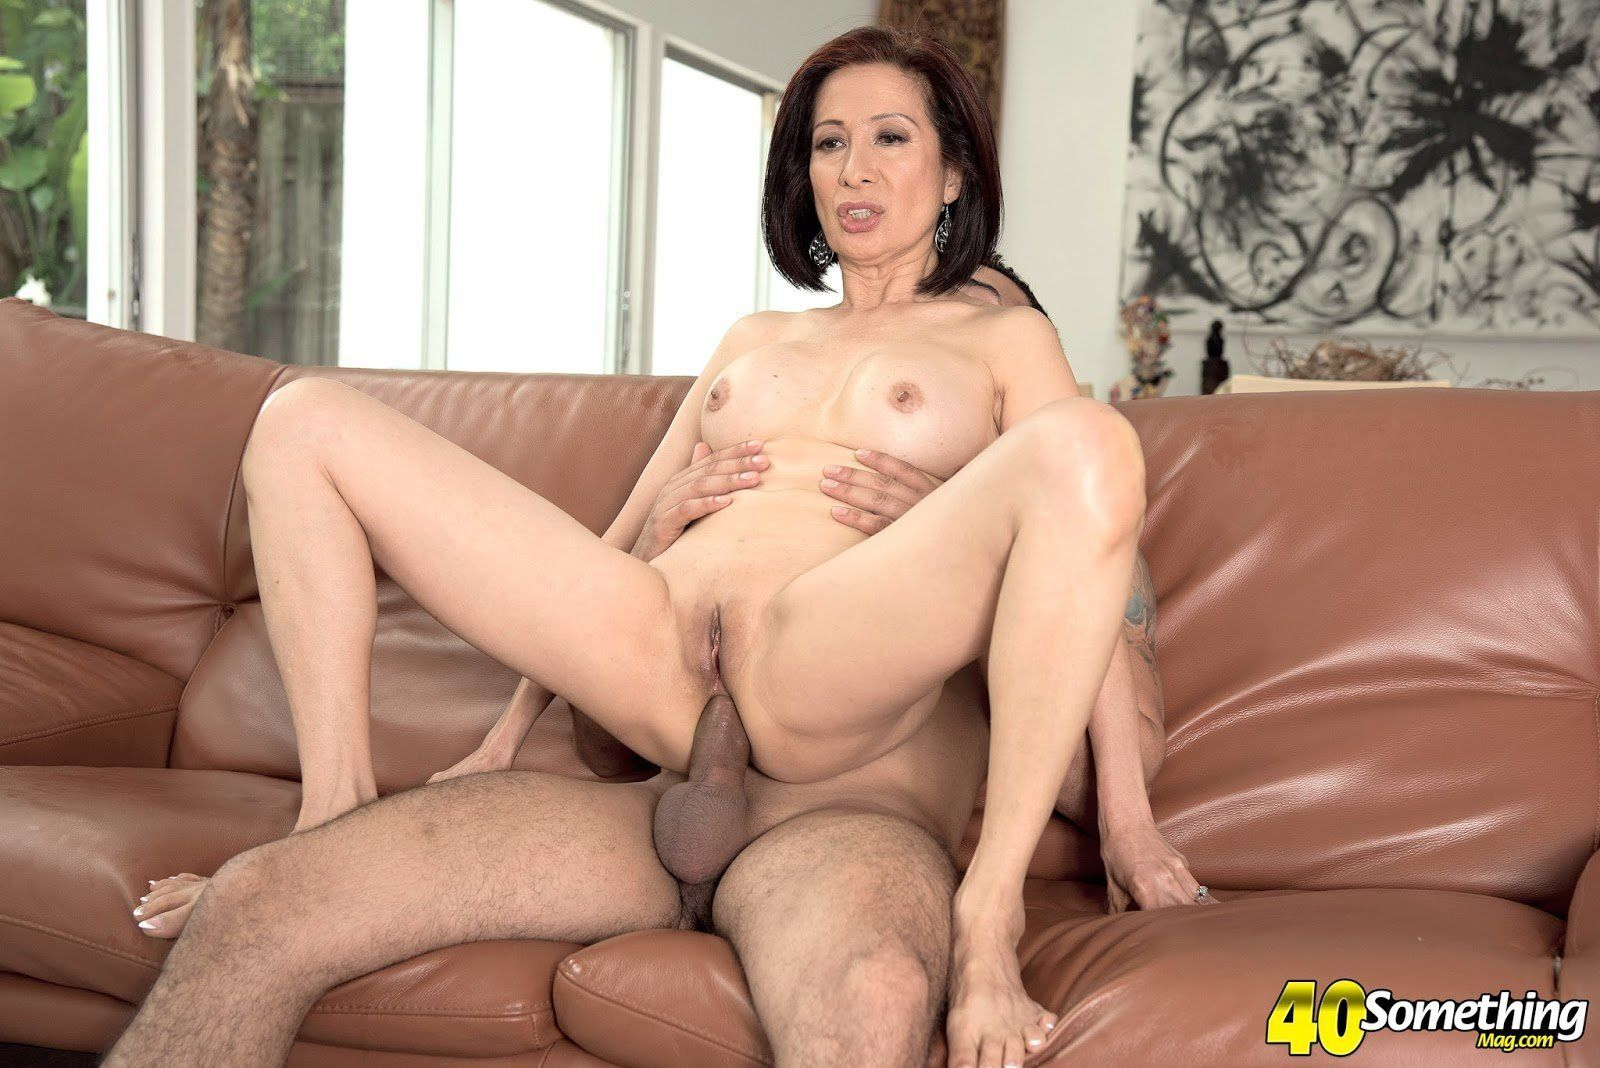 Real People Anal Sex - Busty mature asians having anal sex . Porn pictures. Comments: 4